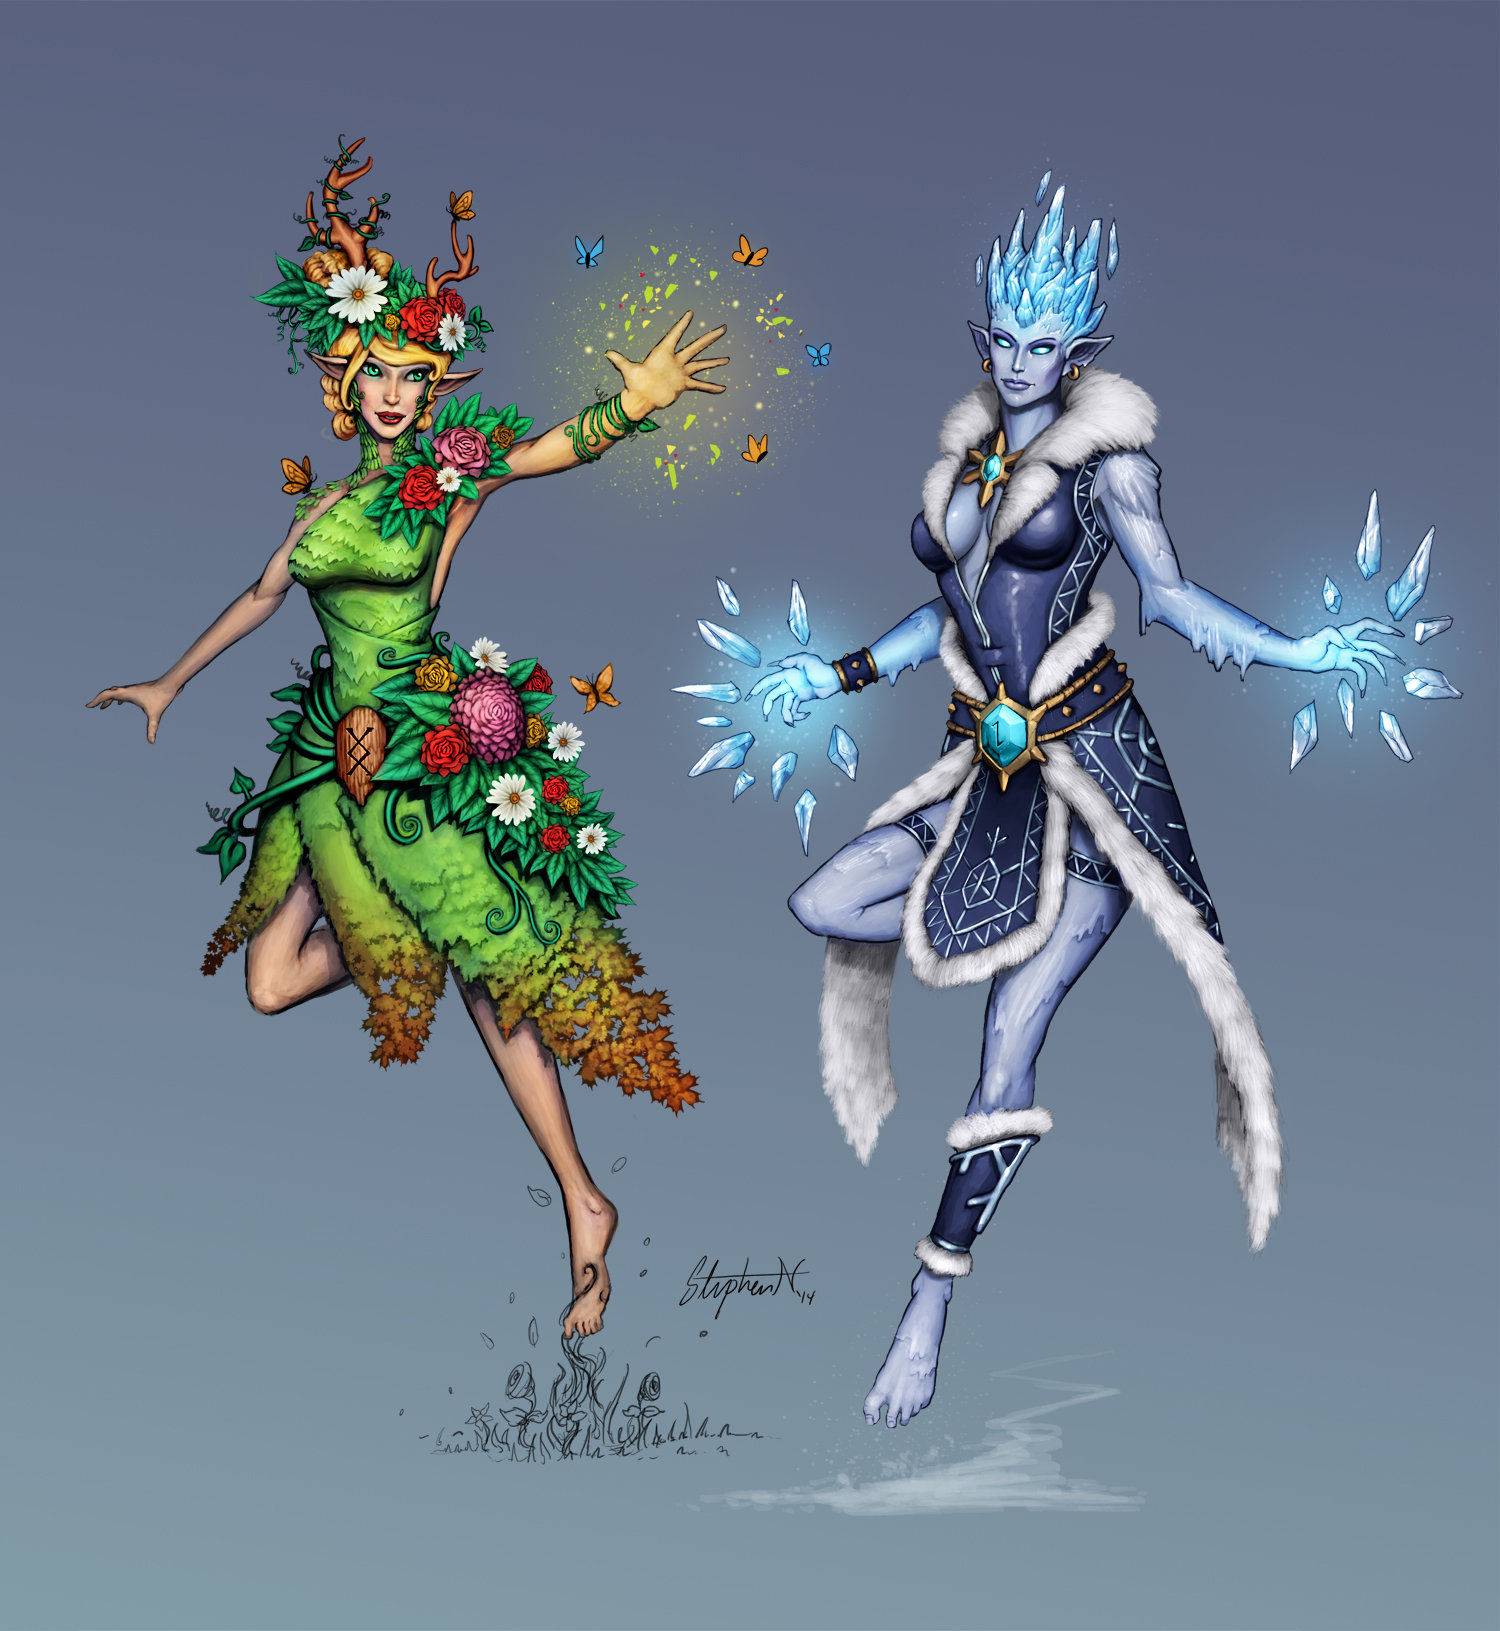 Smite: Summer And Winter Hel, Stephen Nickel